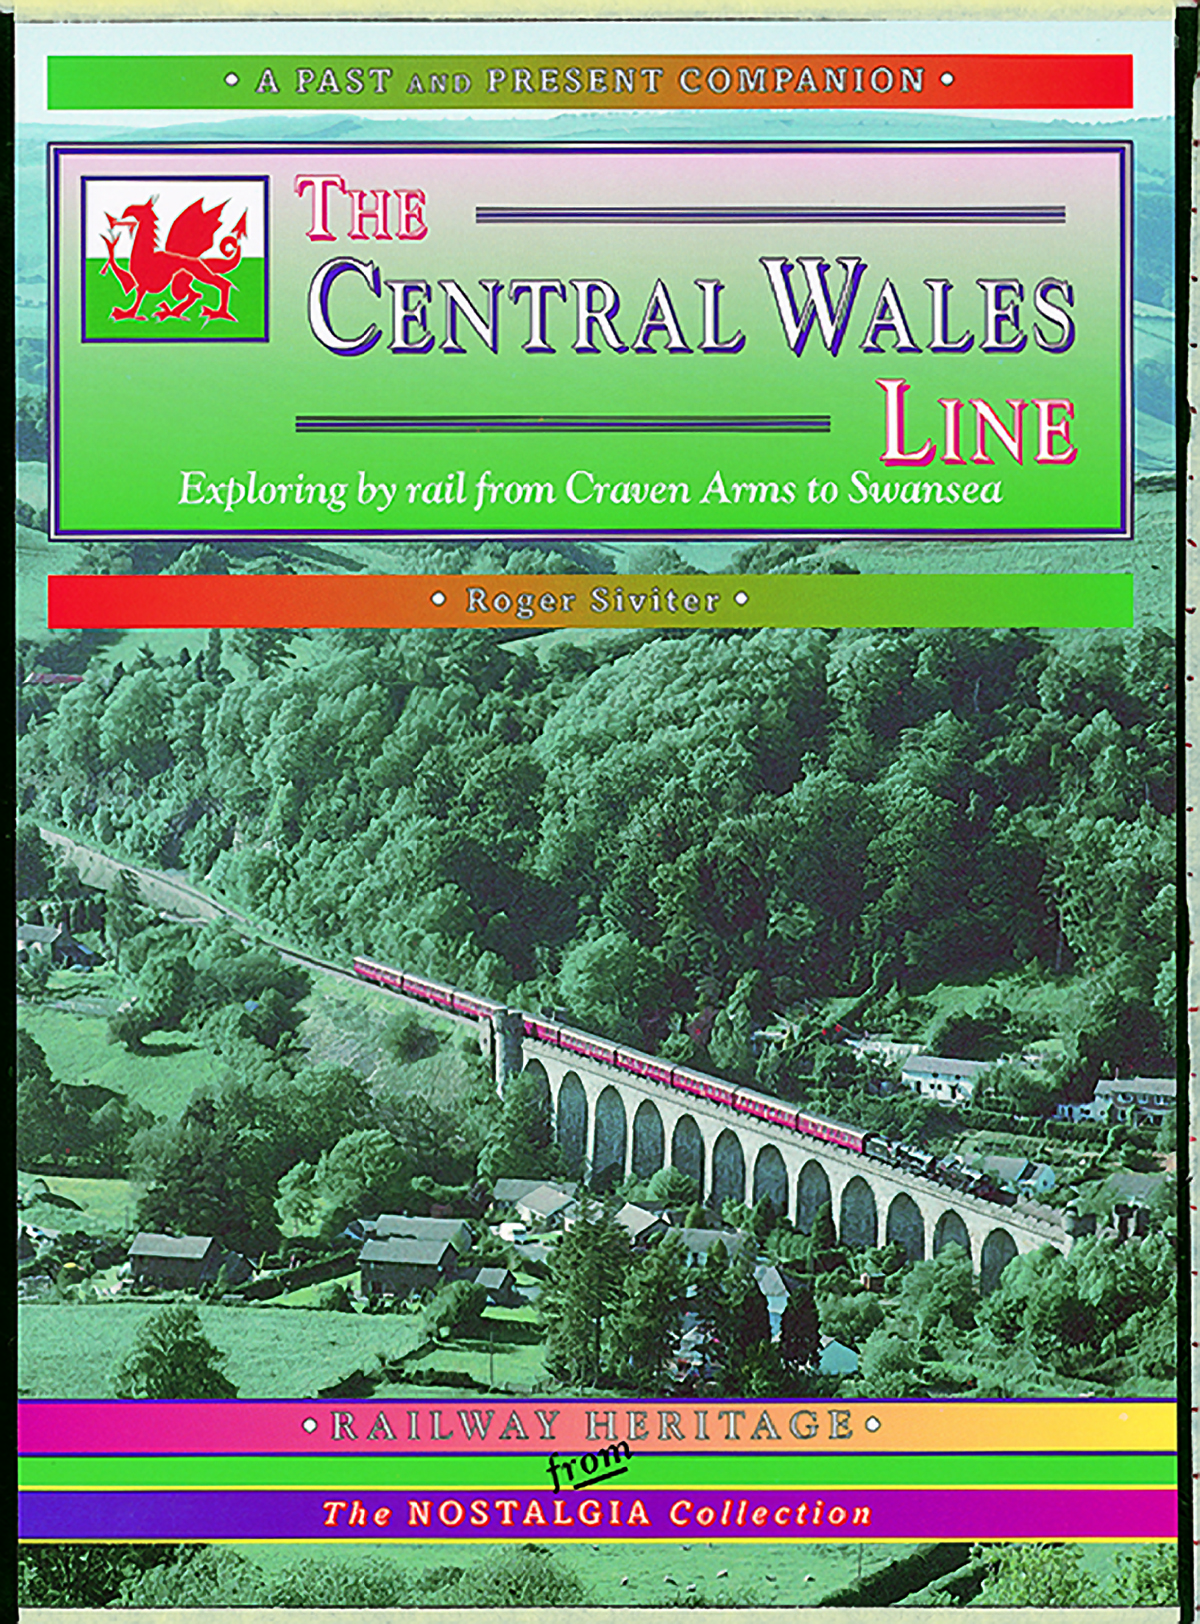 1386 - The Central Wales Line